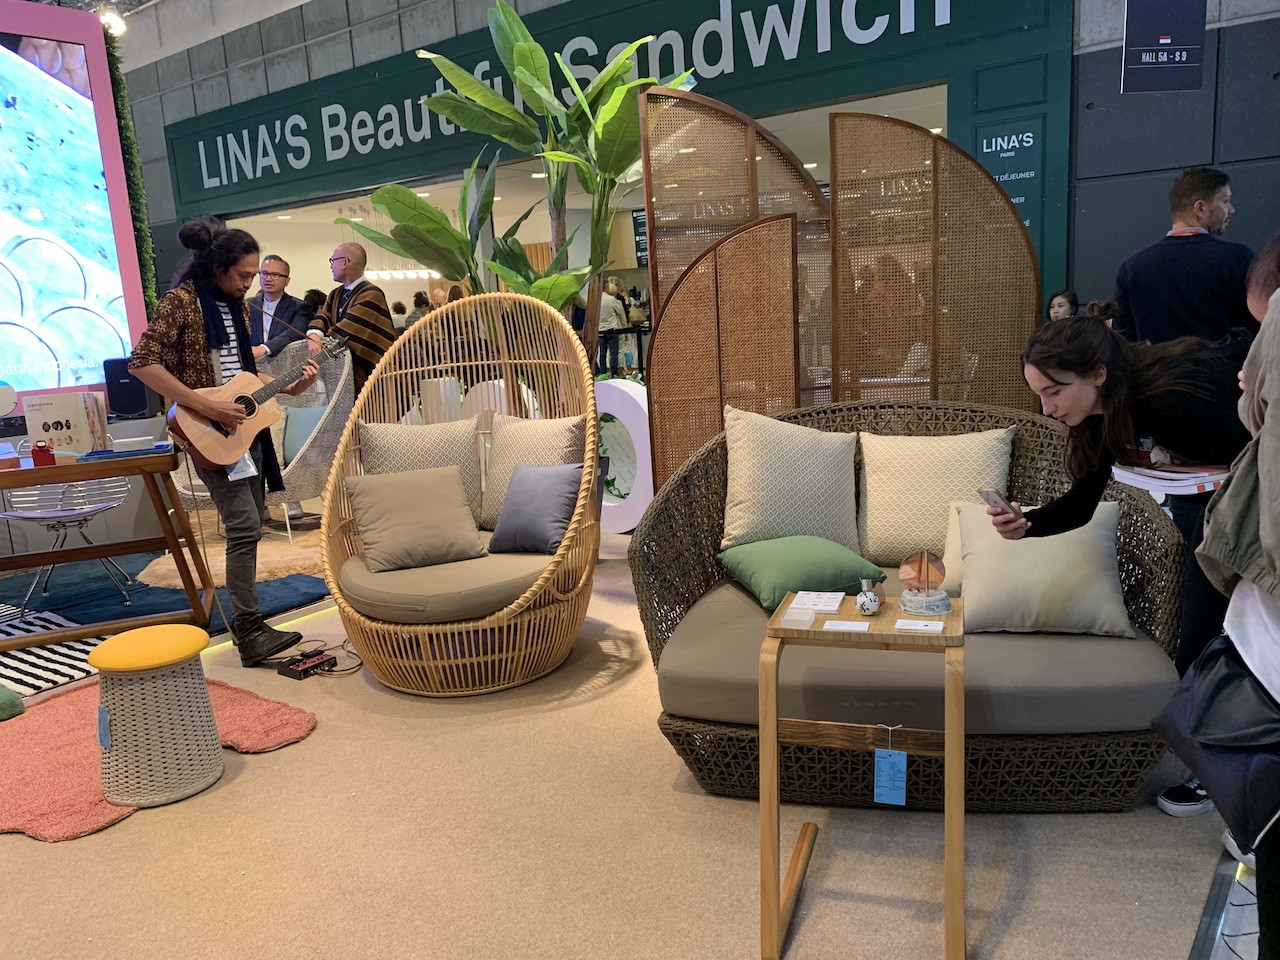 Booth 004 - A tropical taste of Indonesia presented in contemporary furniture displayed at the Indonesian Pavilion at the Maison&Objet 2019 trade show.